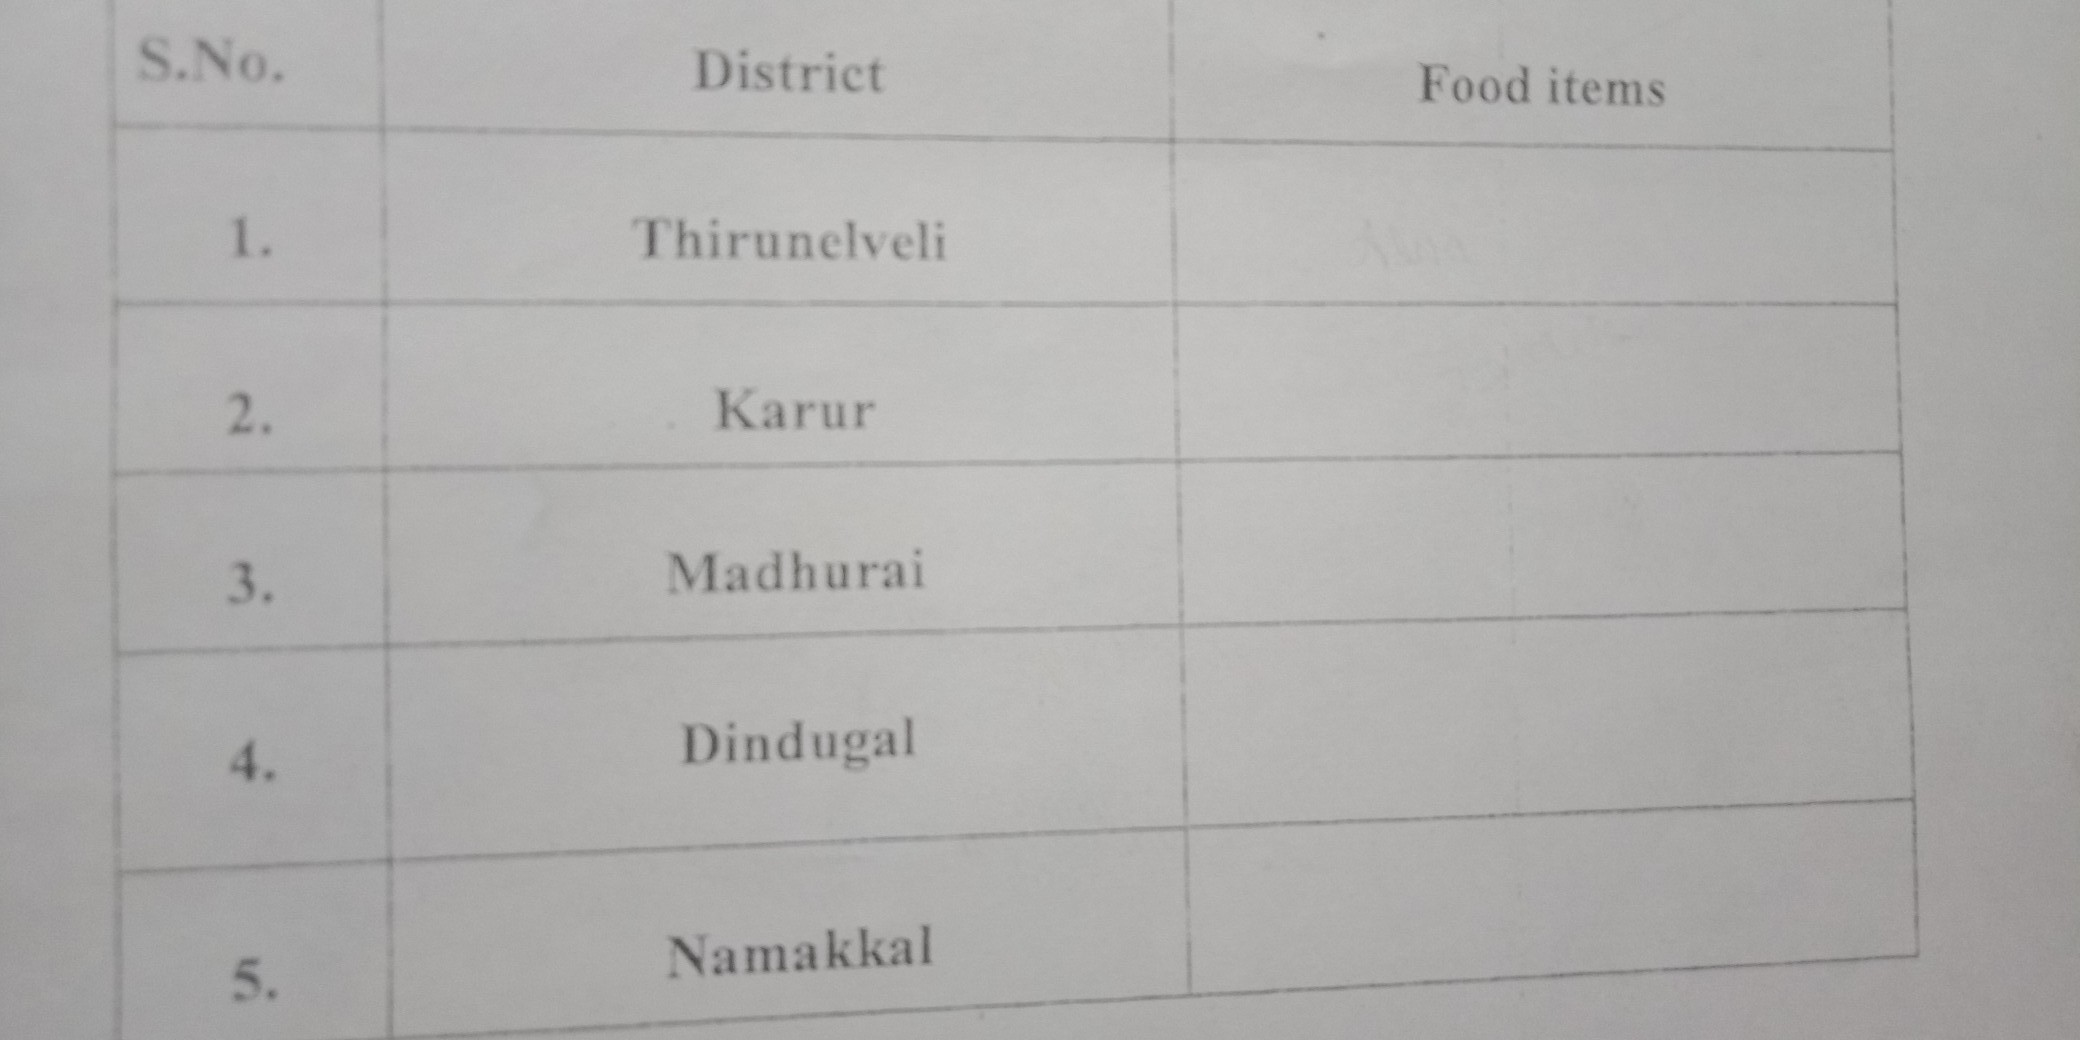 write the famous food items of the given district  - Brainly in